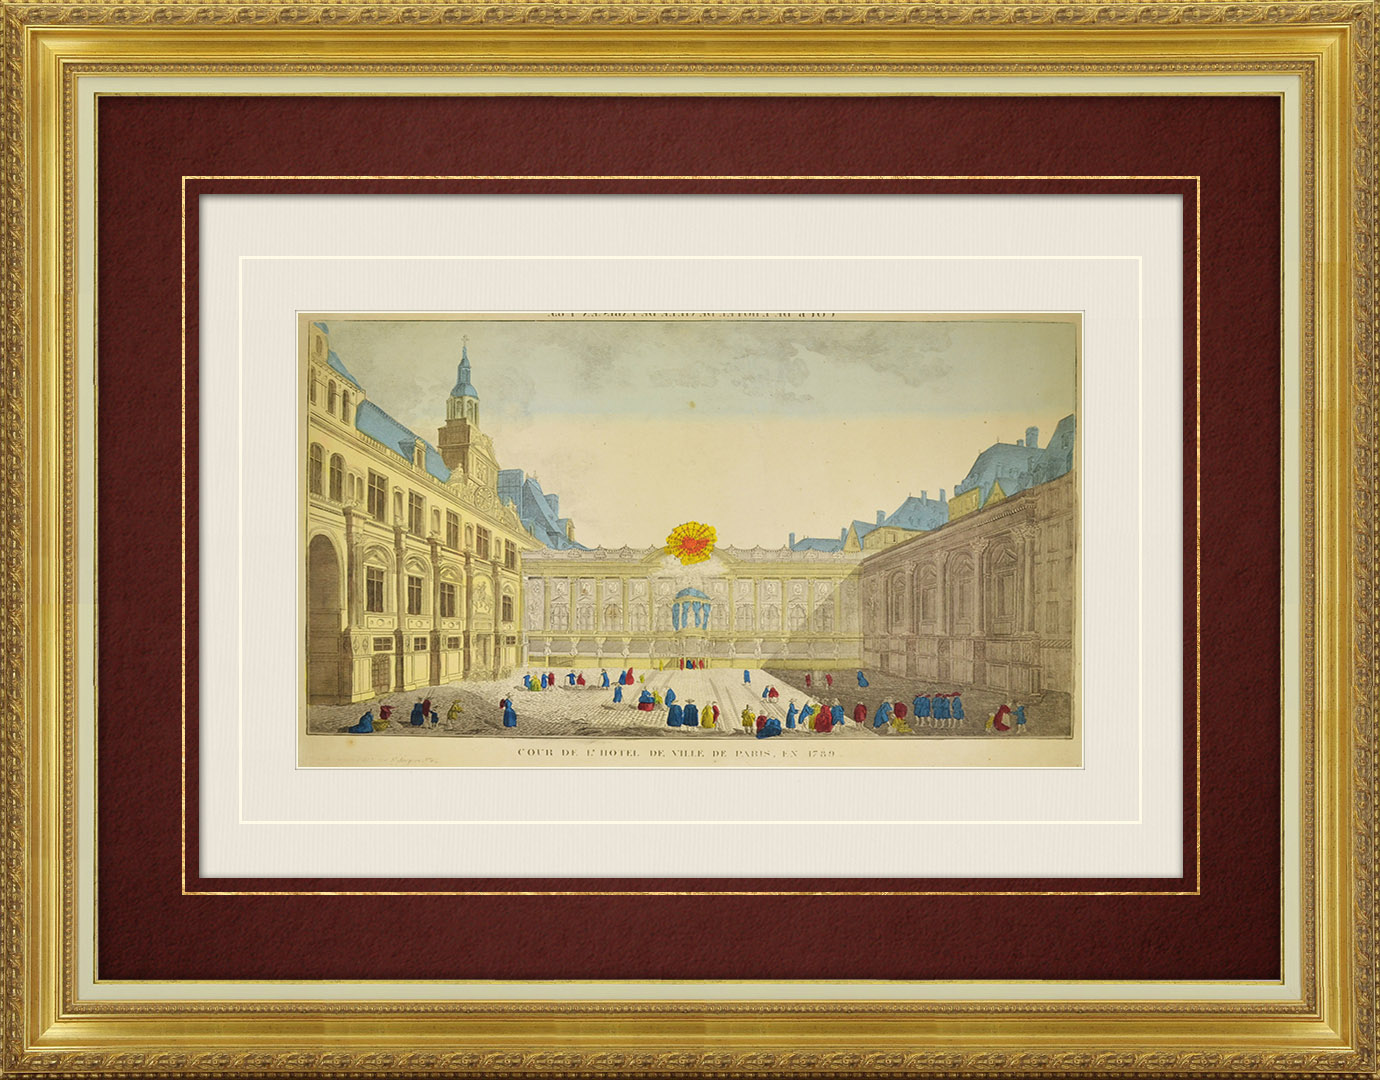 19th Century optical view in original watercolors of the courtyard of the City Hall in Paris in 1789 (France)